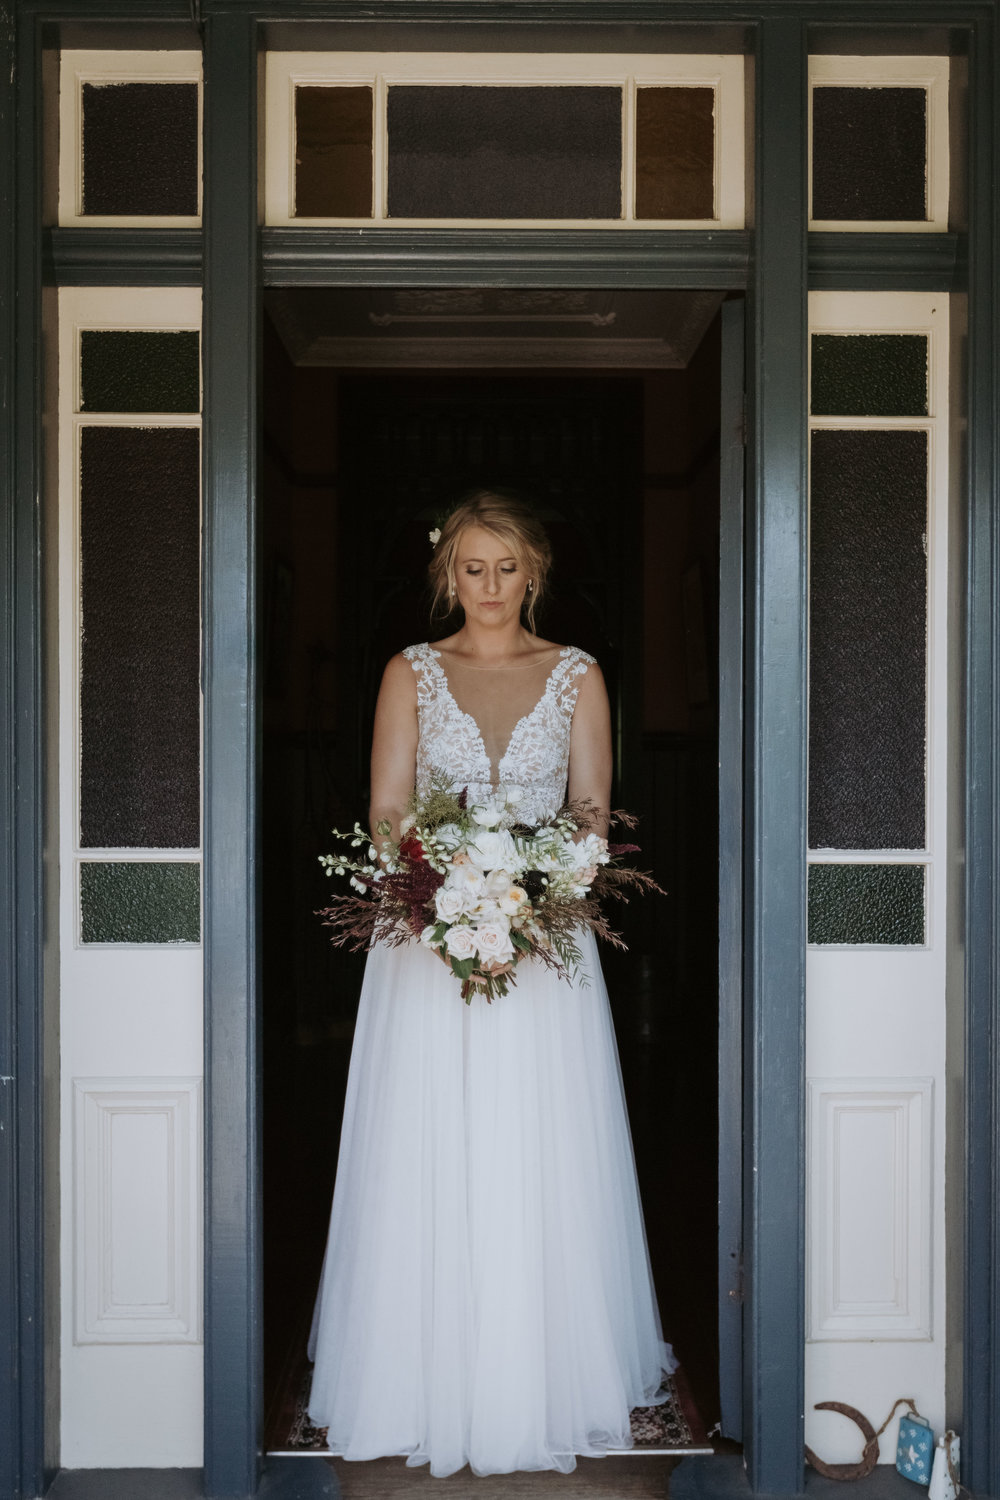 Bride in doorway photo. Natural south coast wedding photography